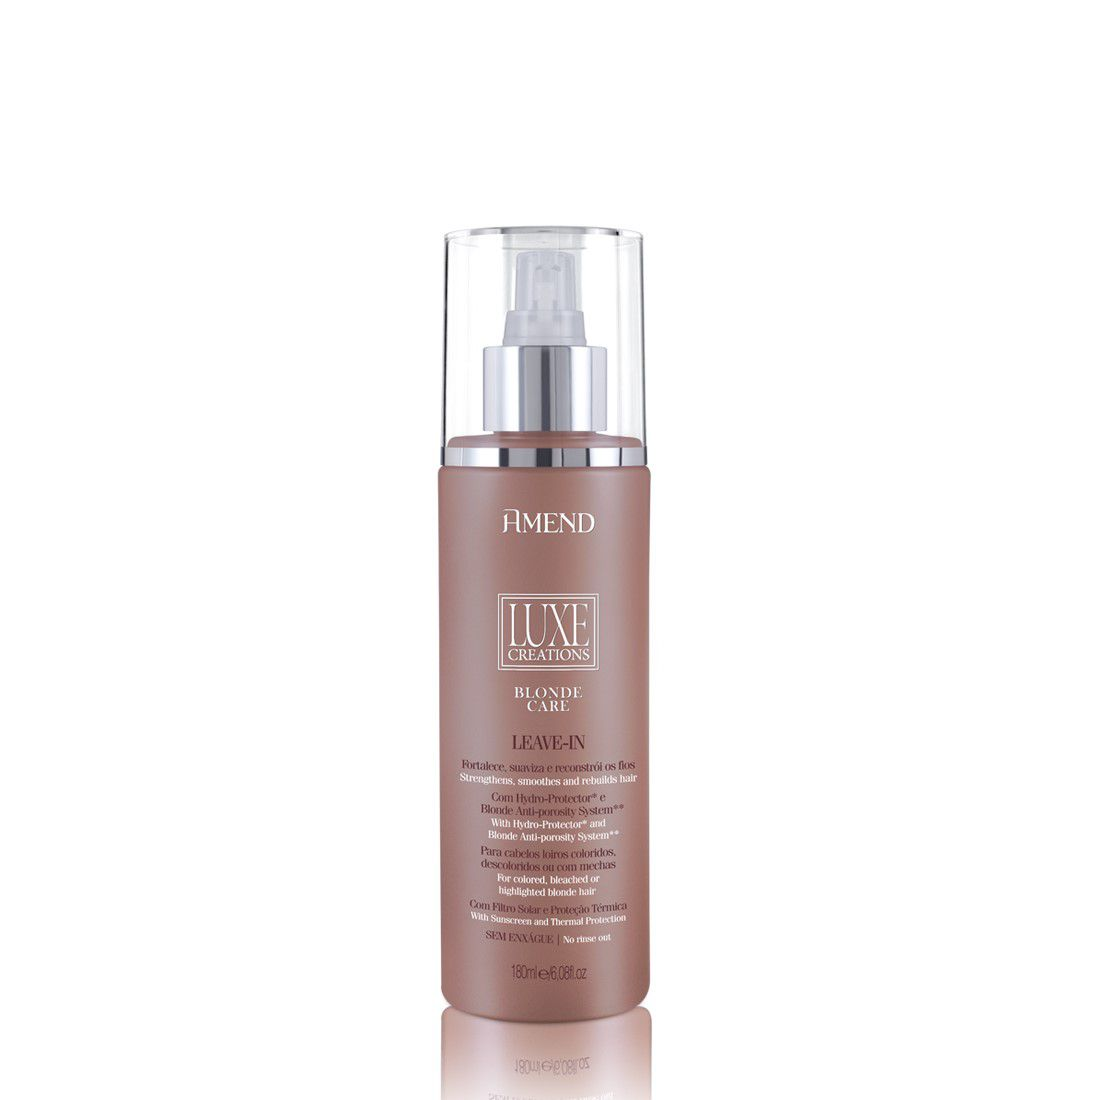 Amend Leave-in Luxe Creations Blond Care 180mL